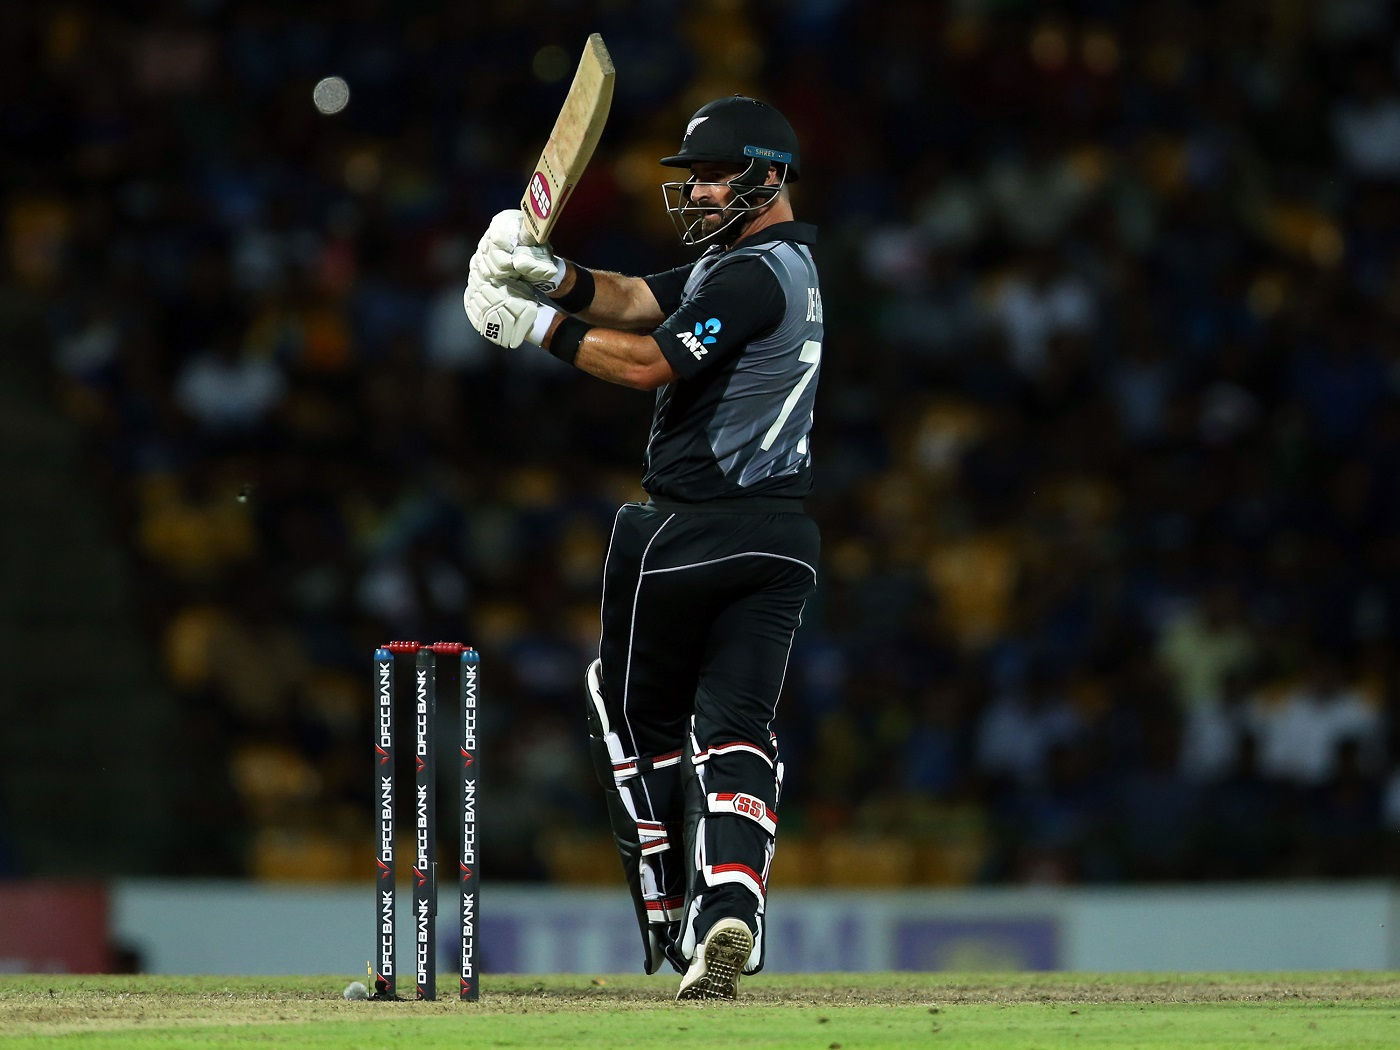 New Zealand beat Sri Lanka by 4 wickets to clinch T20I series